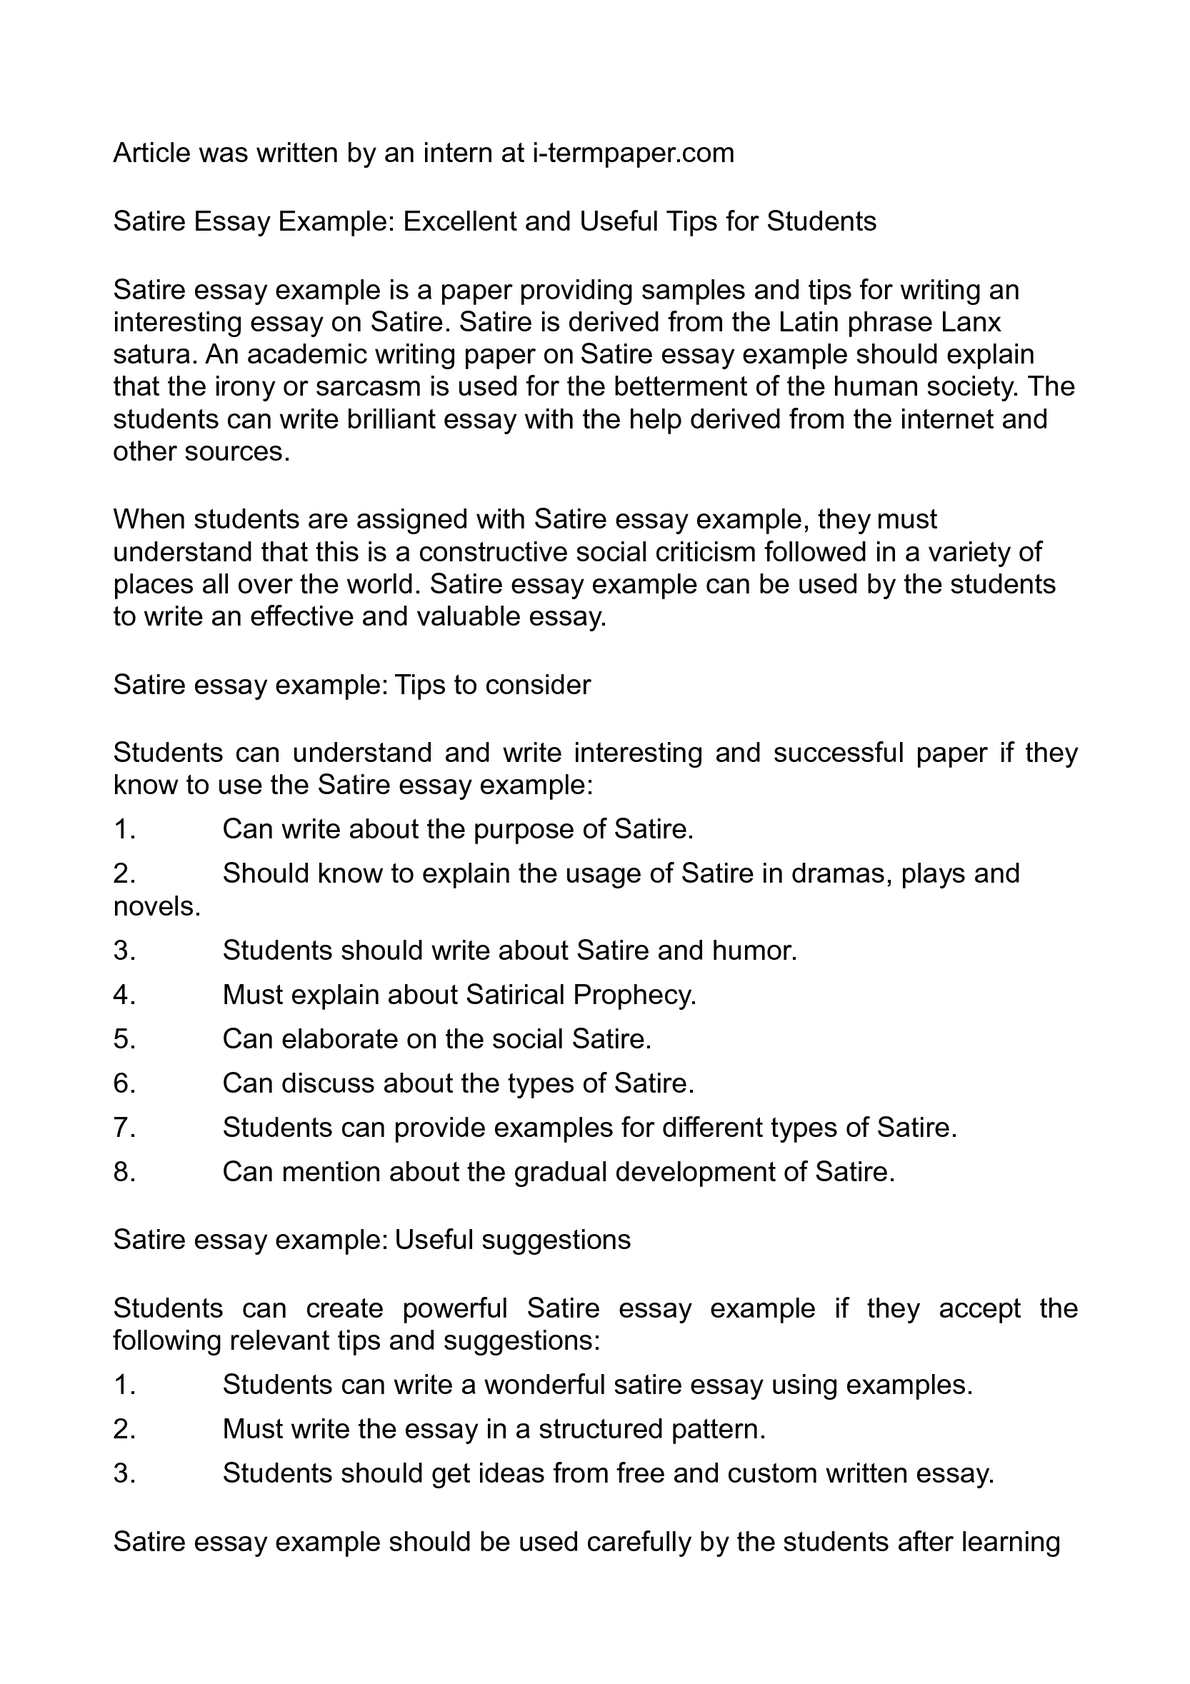 Satire essay topics